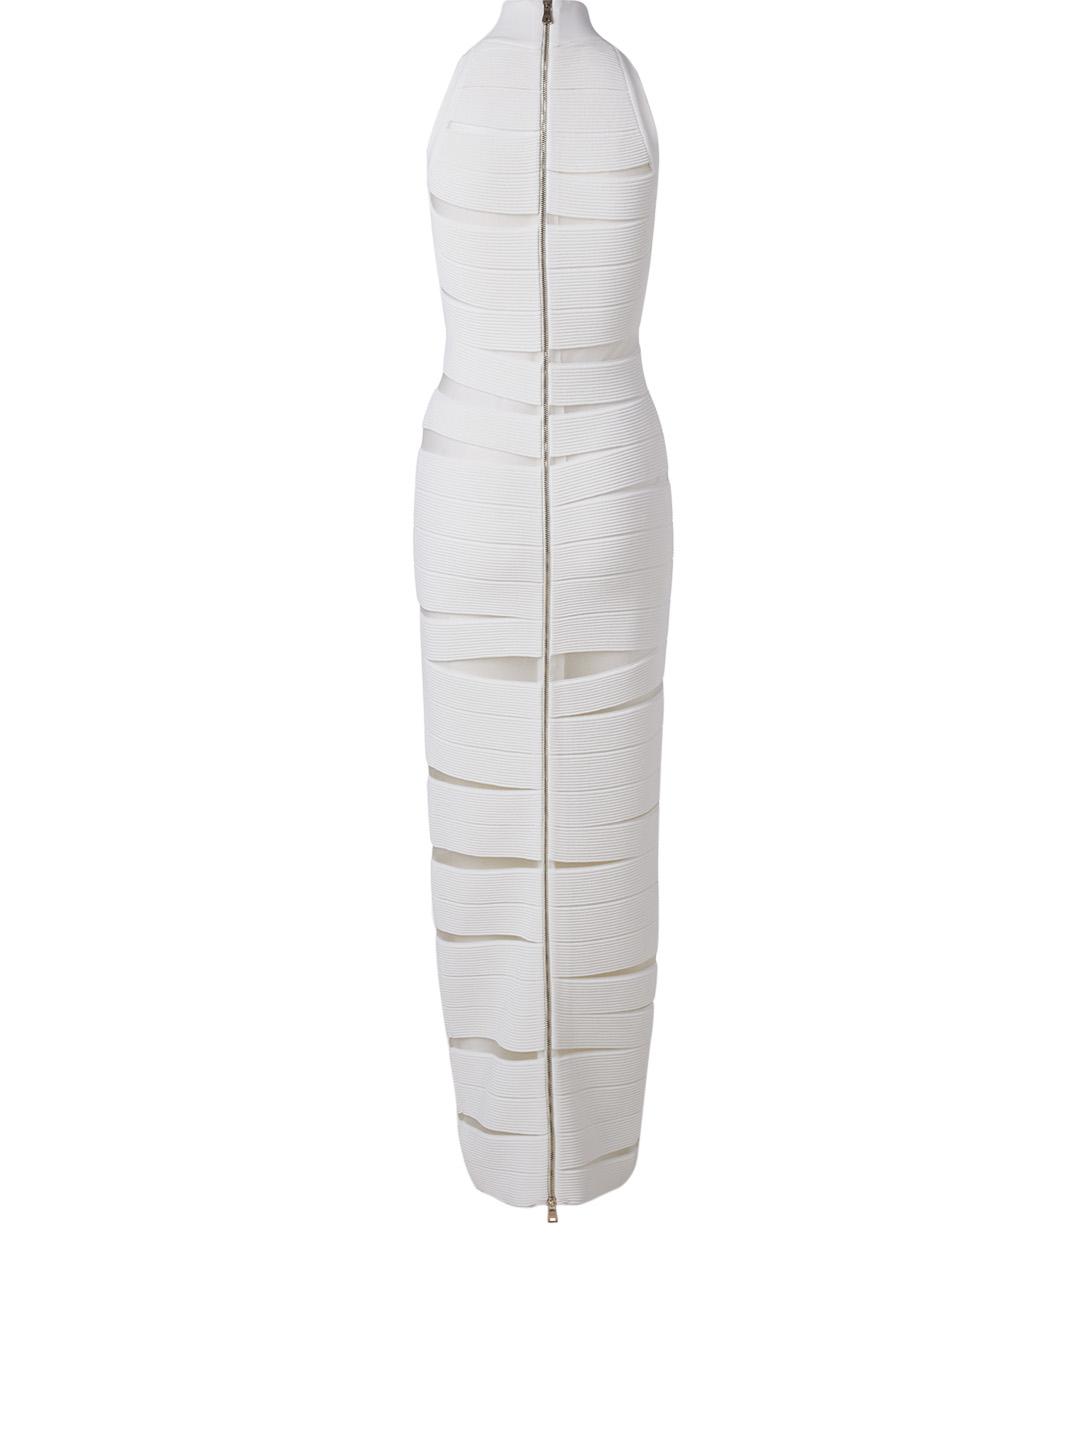 BALMAIN Sleeveless Gown Women's White